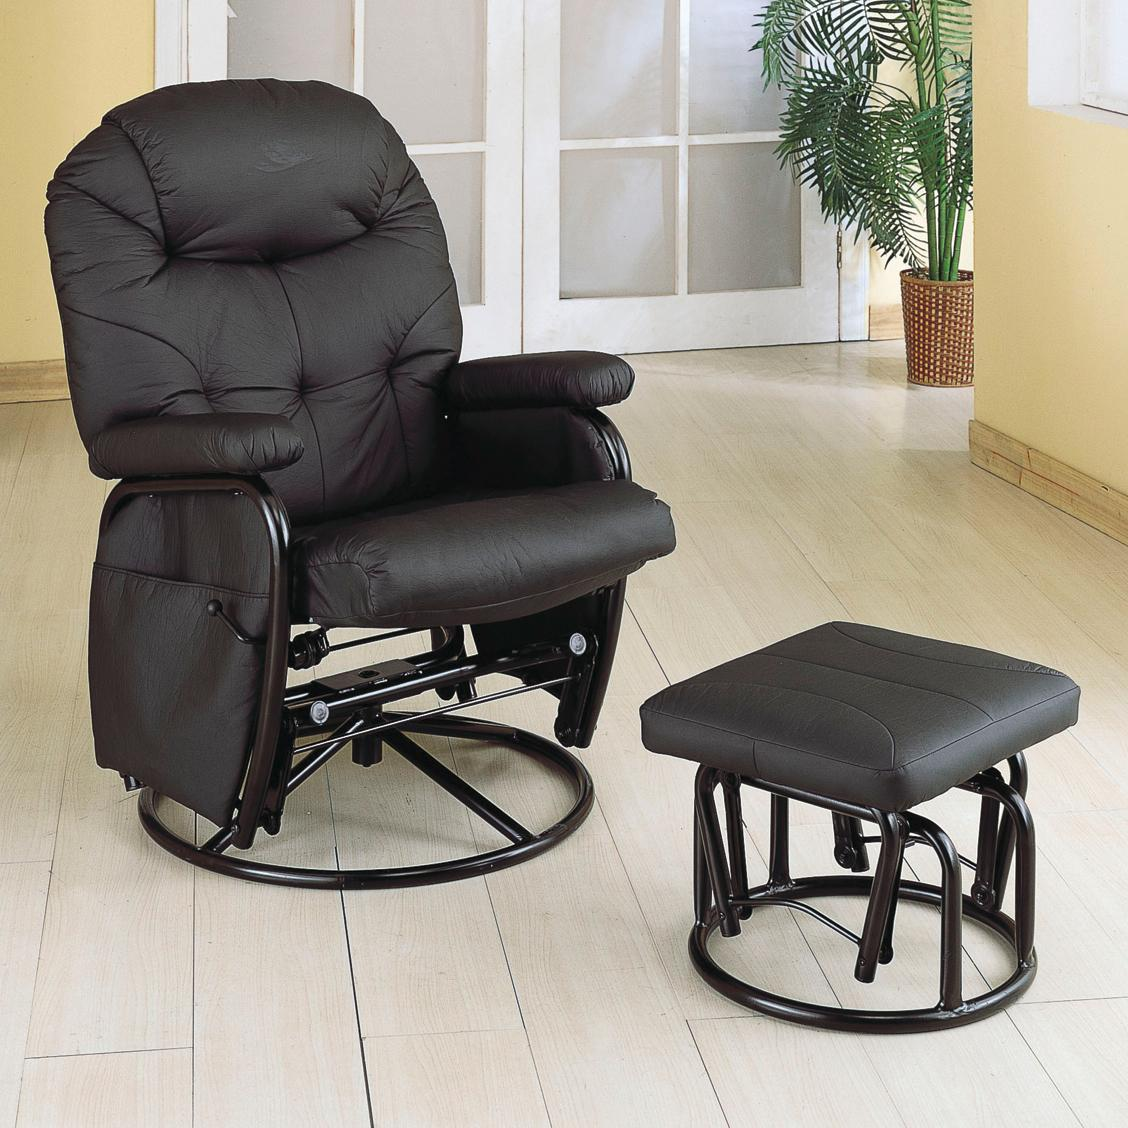 glider chair with ottoman india breakfast table and chairs for two recliners ottomans deluxe swivel matching